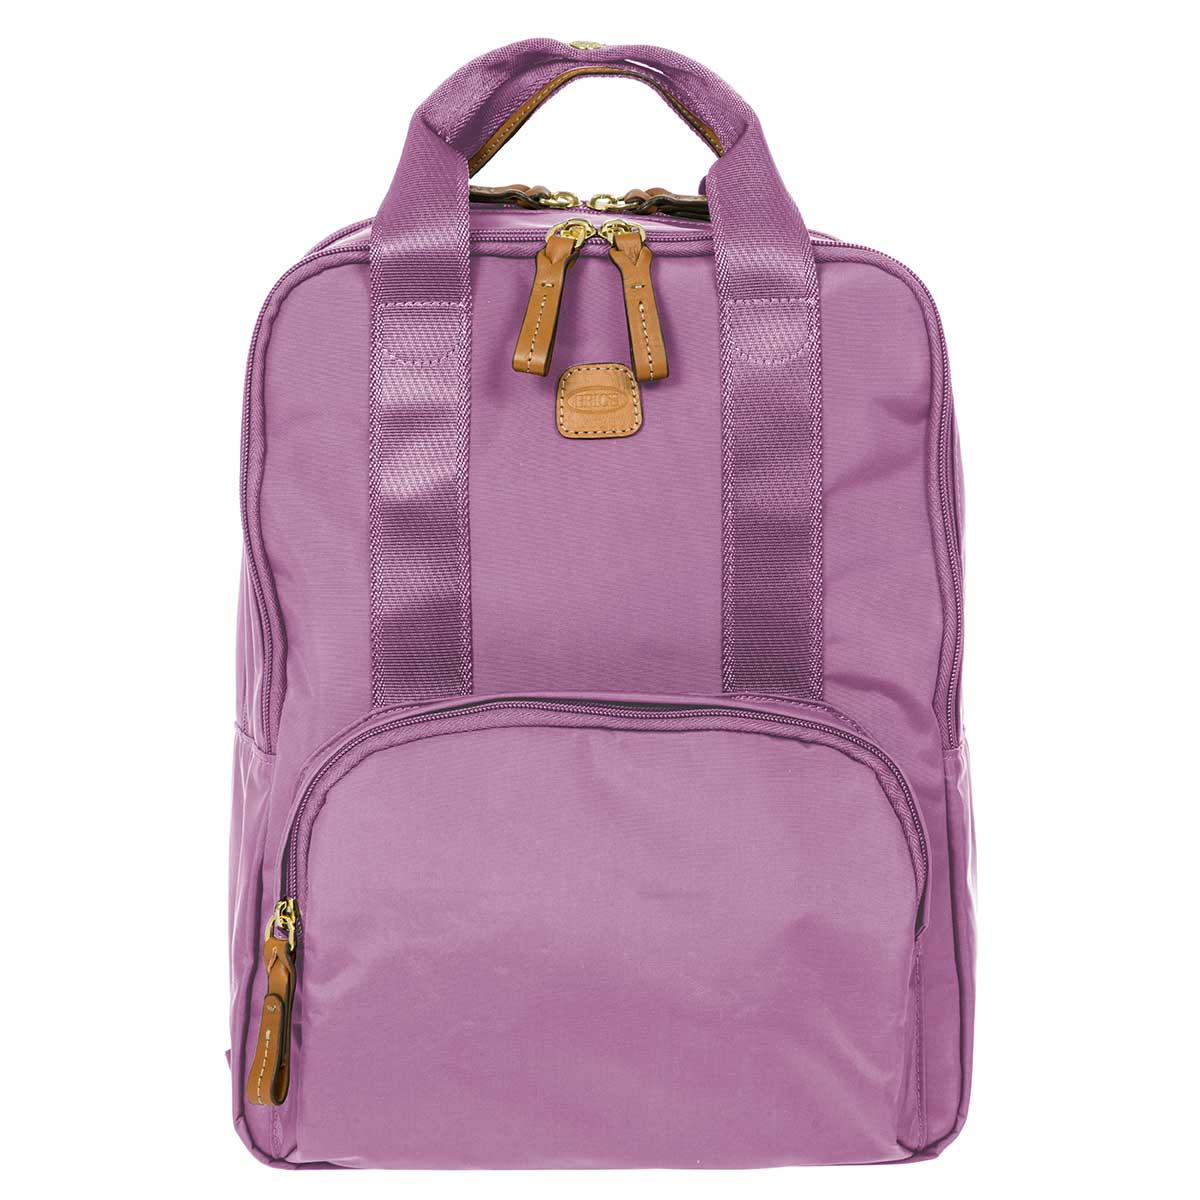 X-bag Urban Backpack - Wisteria | BRIC'S Travel Bags